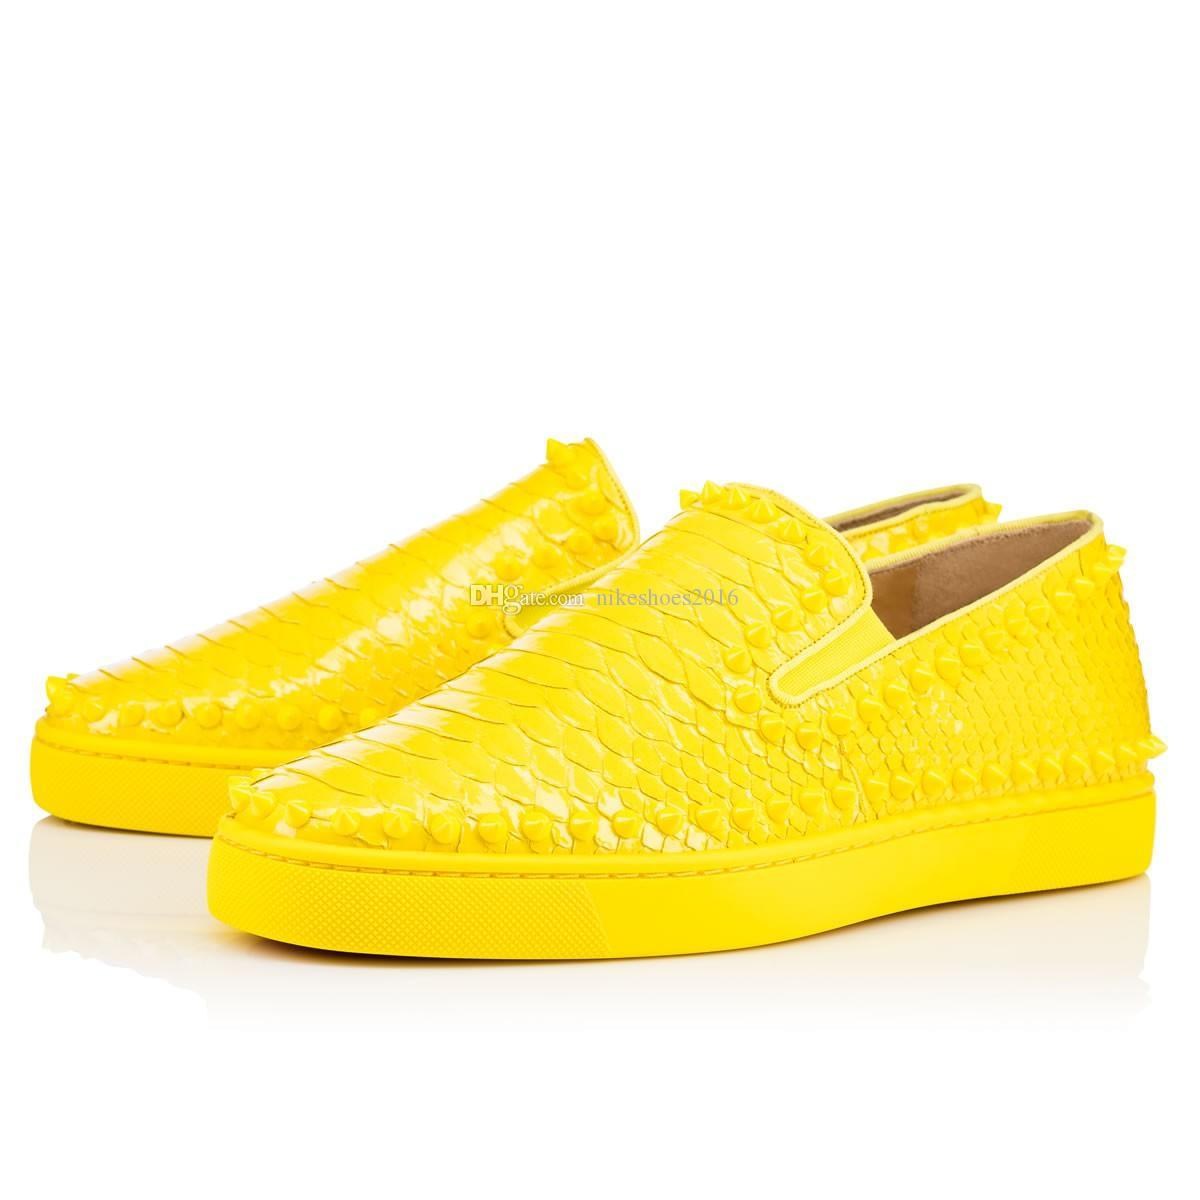 Top Quality Shoes Red Bottom Pik Boat